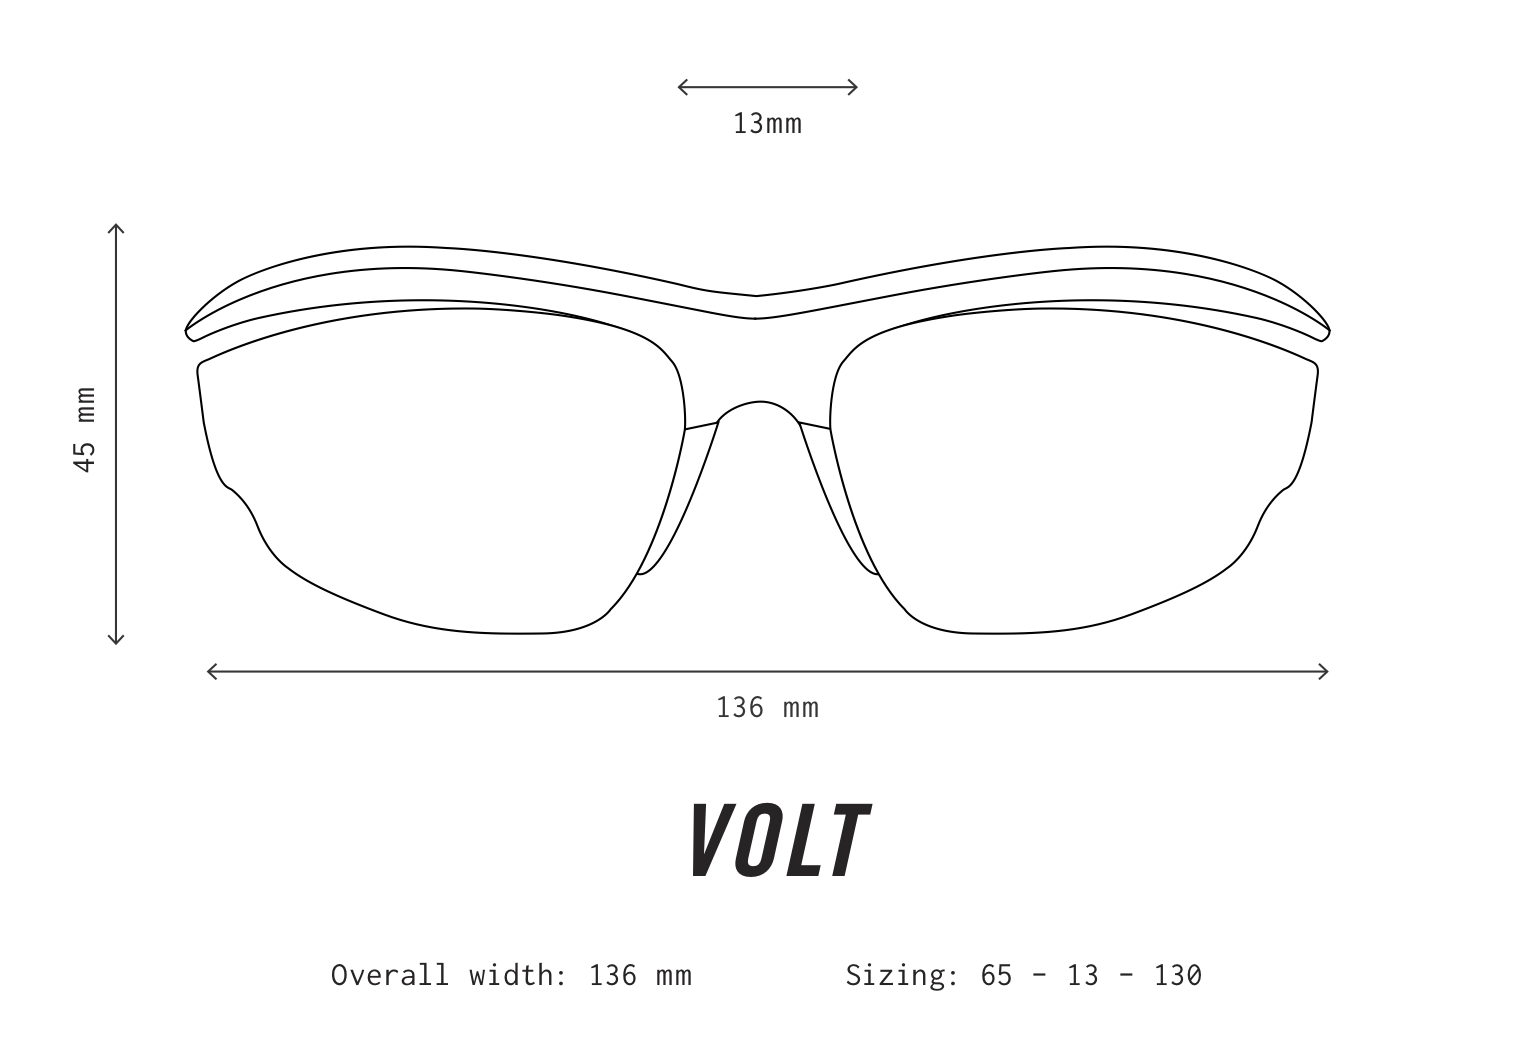 VOLT Sunglasses Fit Information